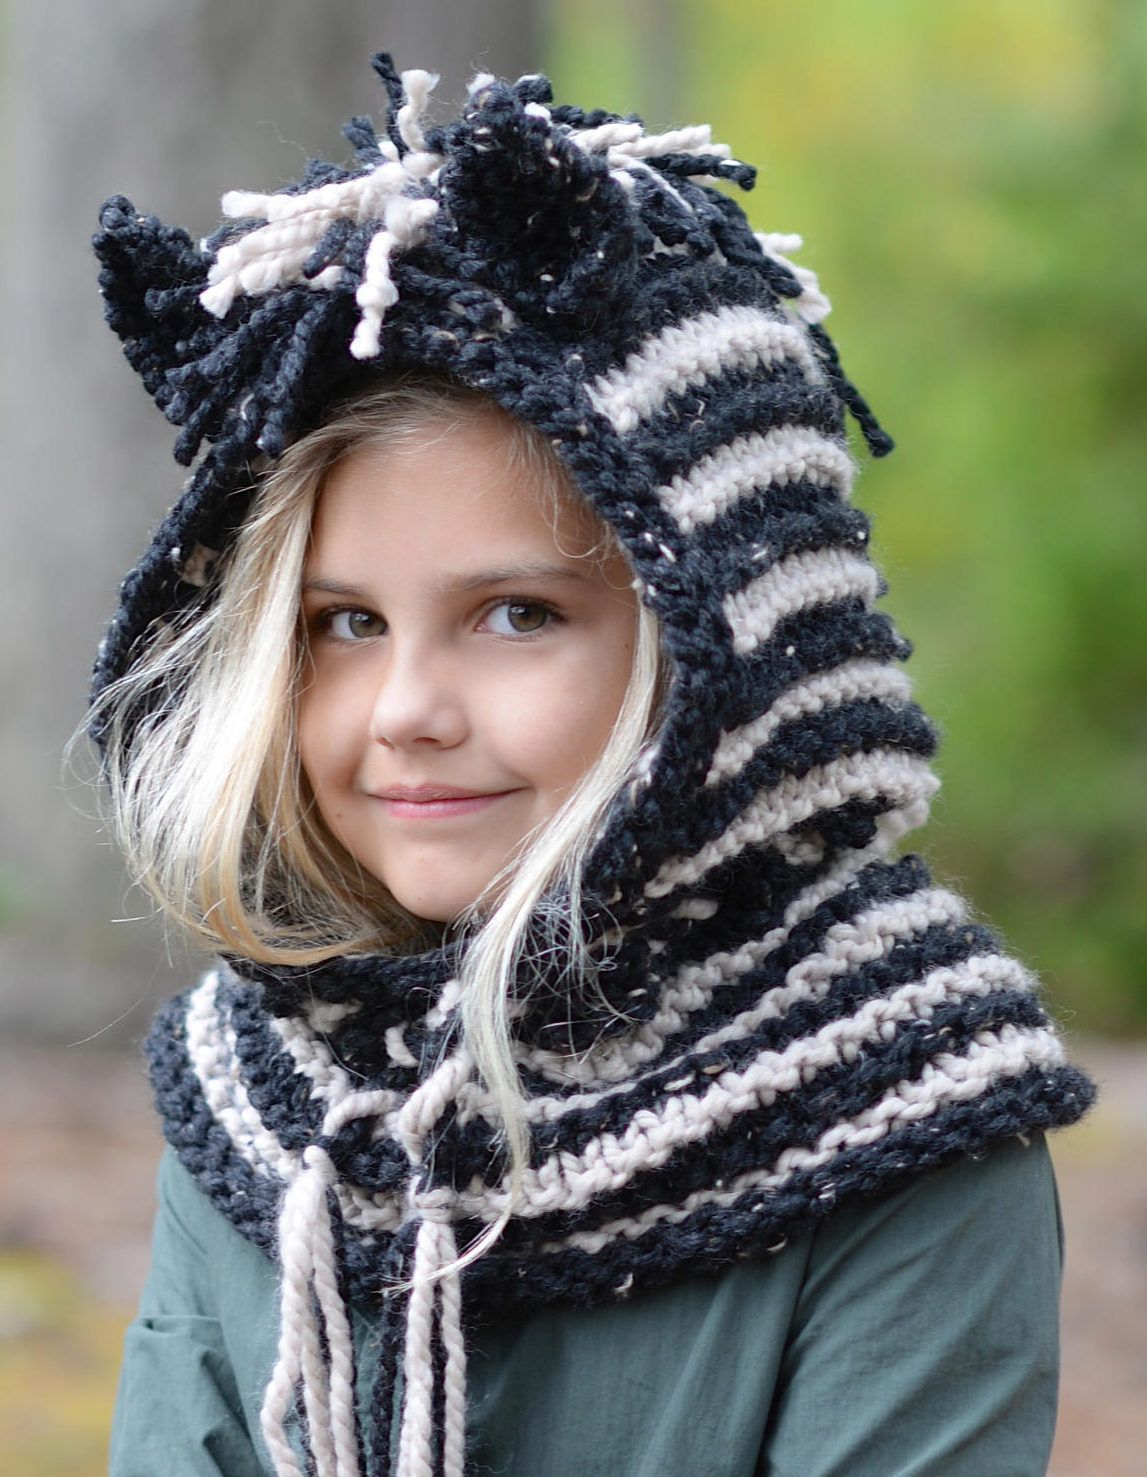 One Stitch Hat (Knit) (With images) Knitted hats, Easy